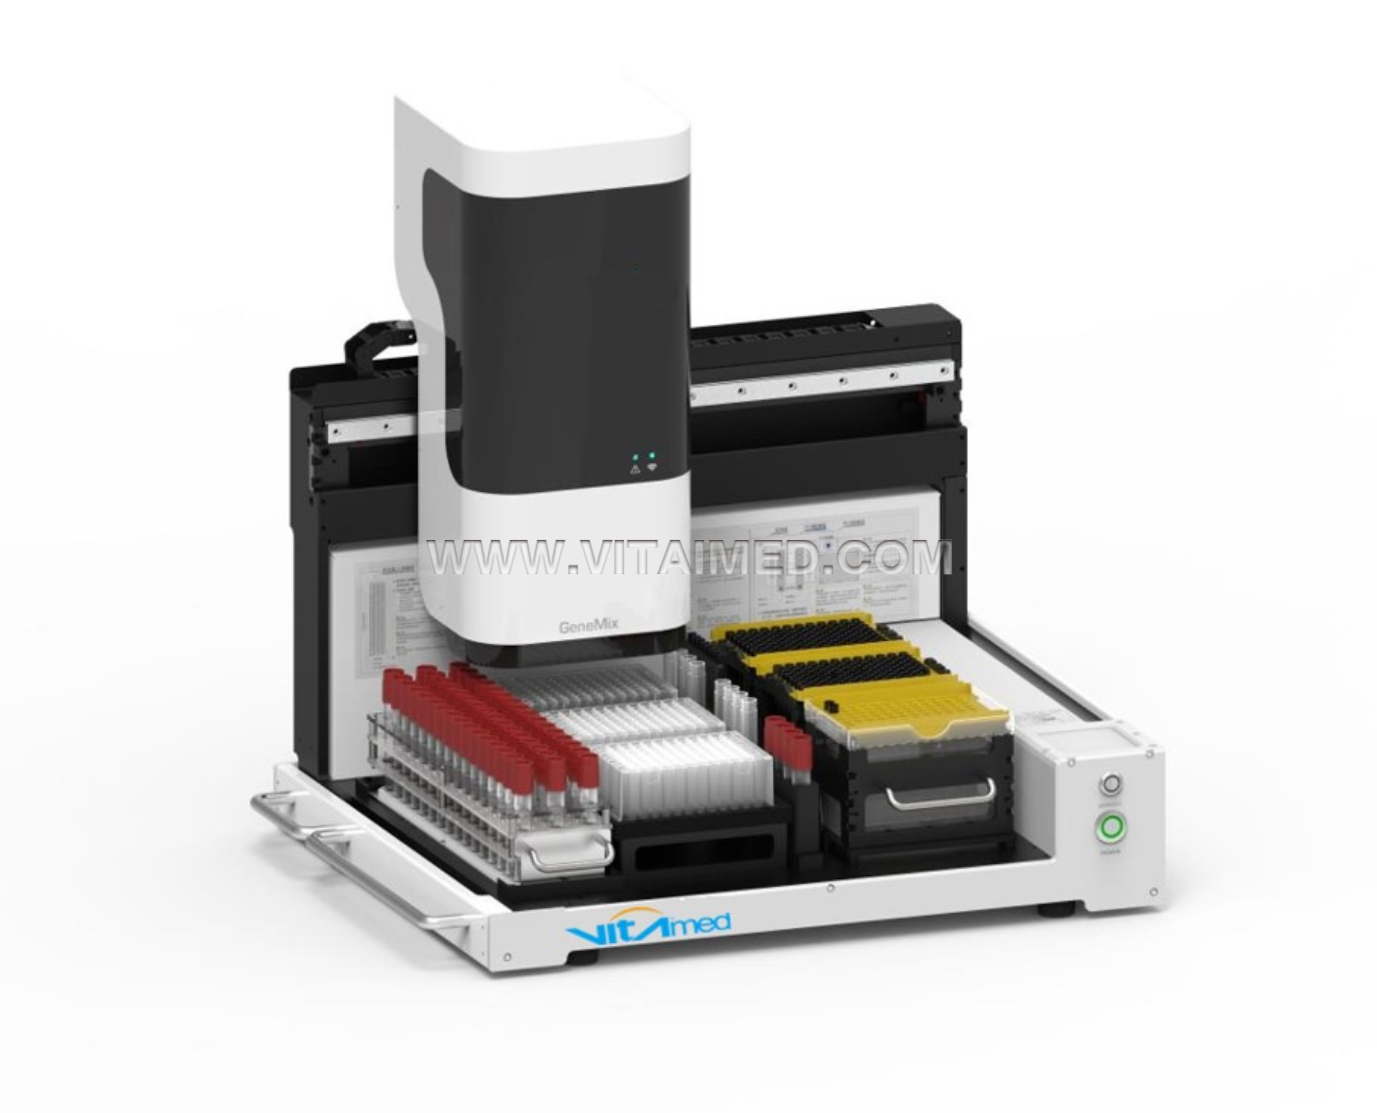 VitaiMix 48 Automated Sample Processing System